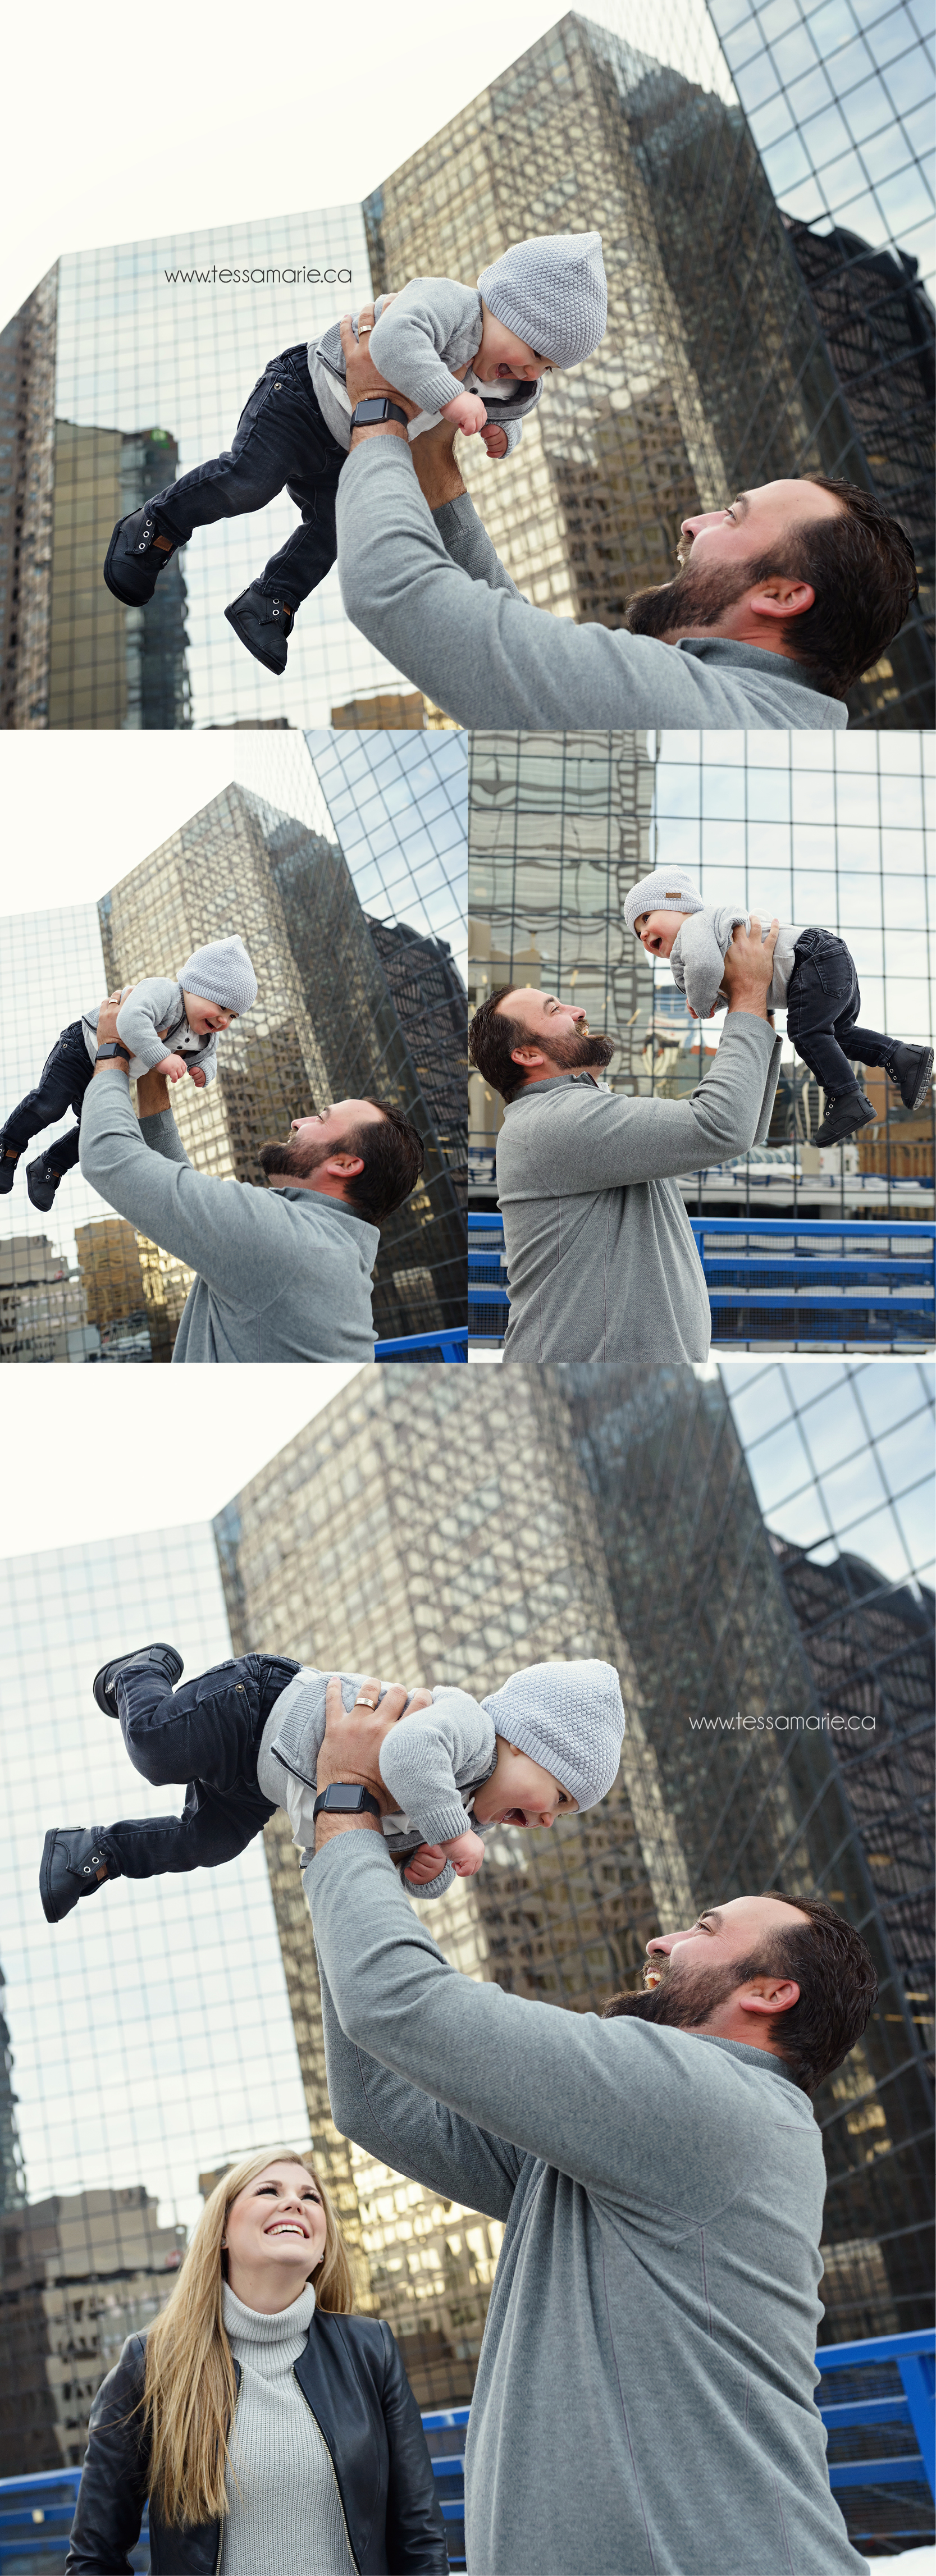 One Year old family portrait - Tessa Marie Photography Inc.  - www.tessamarie.ca